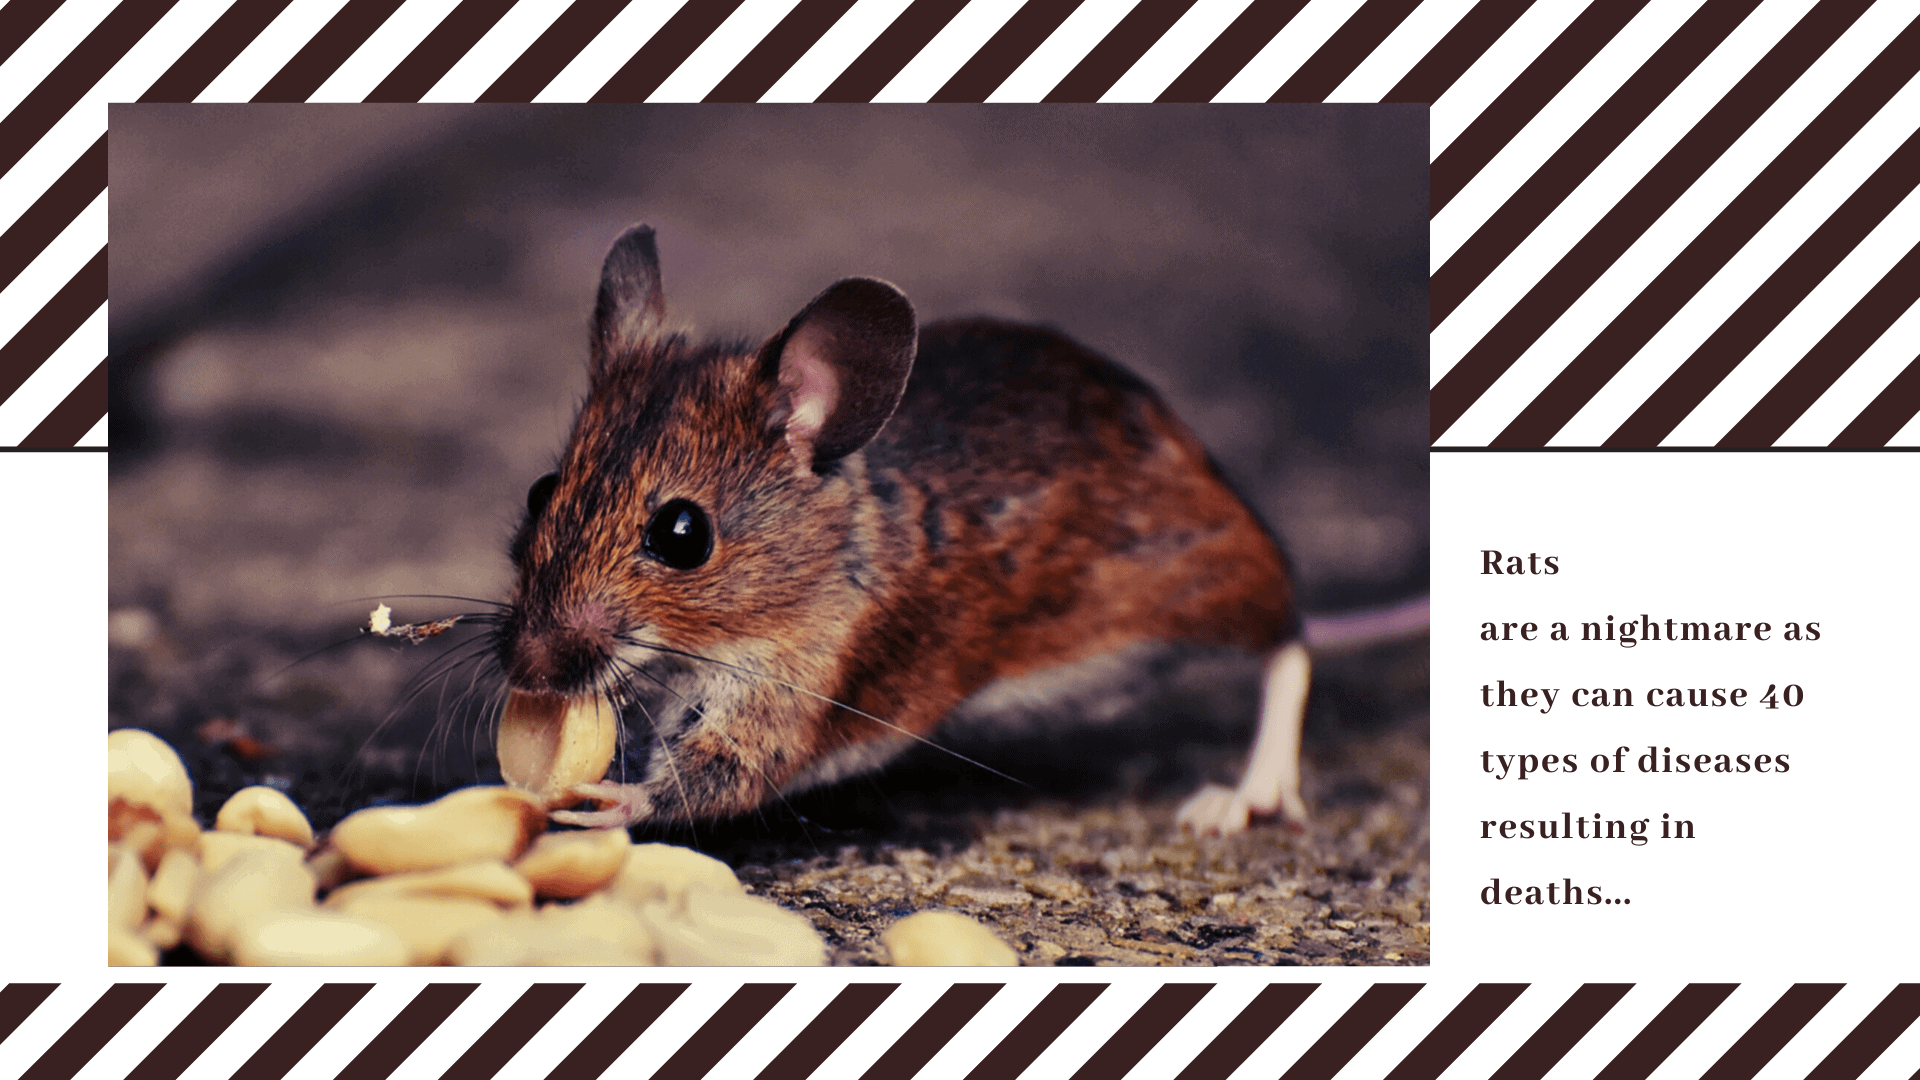 Rats are a nightmare as they can cause 40 types of diseases resulting in deaths